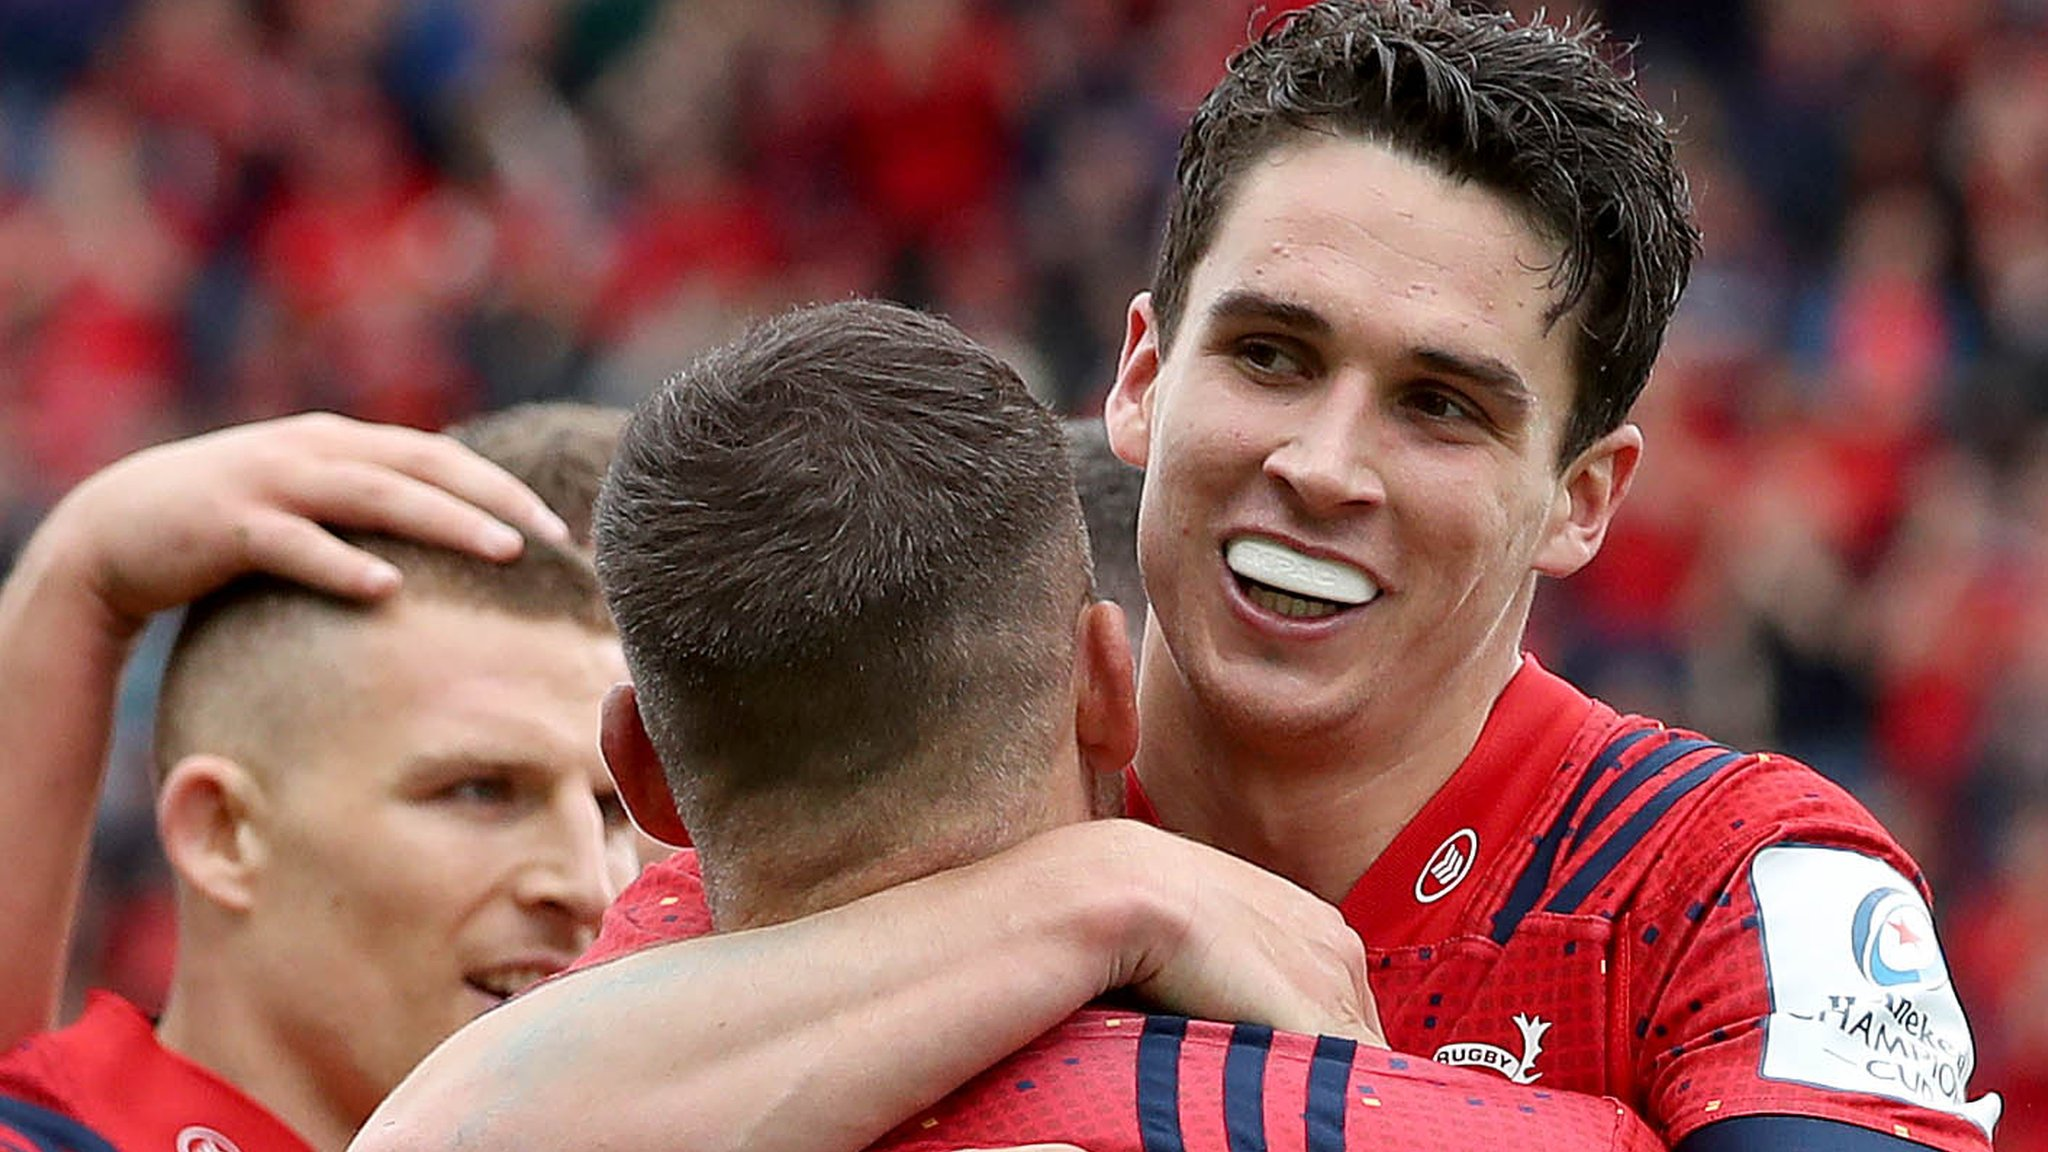 European Champions Cup: Munster 36-22 Gloucester